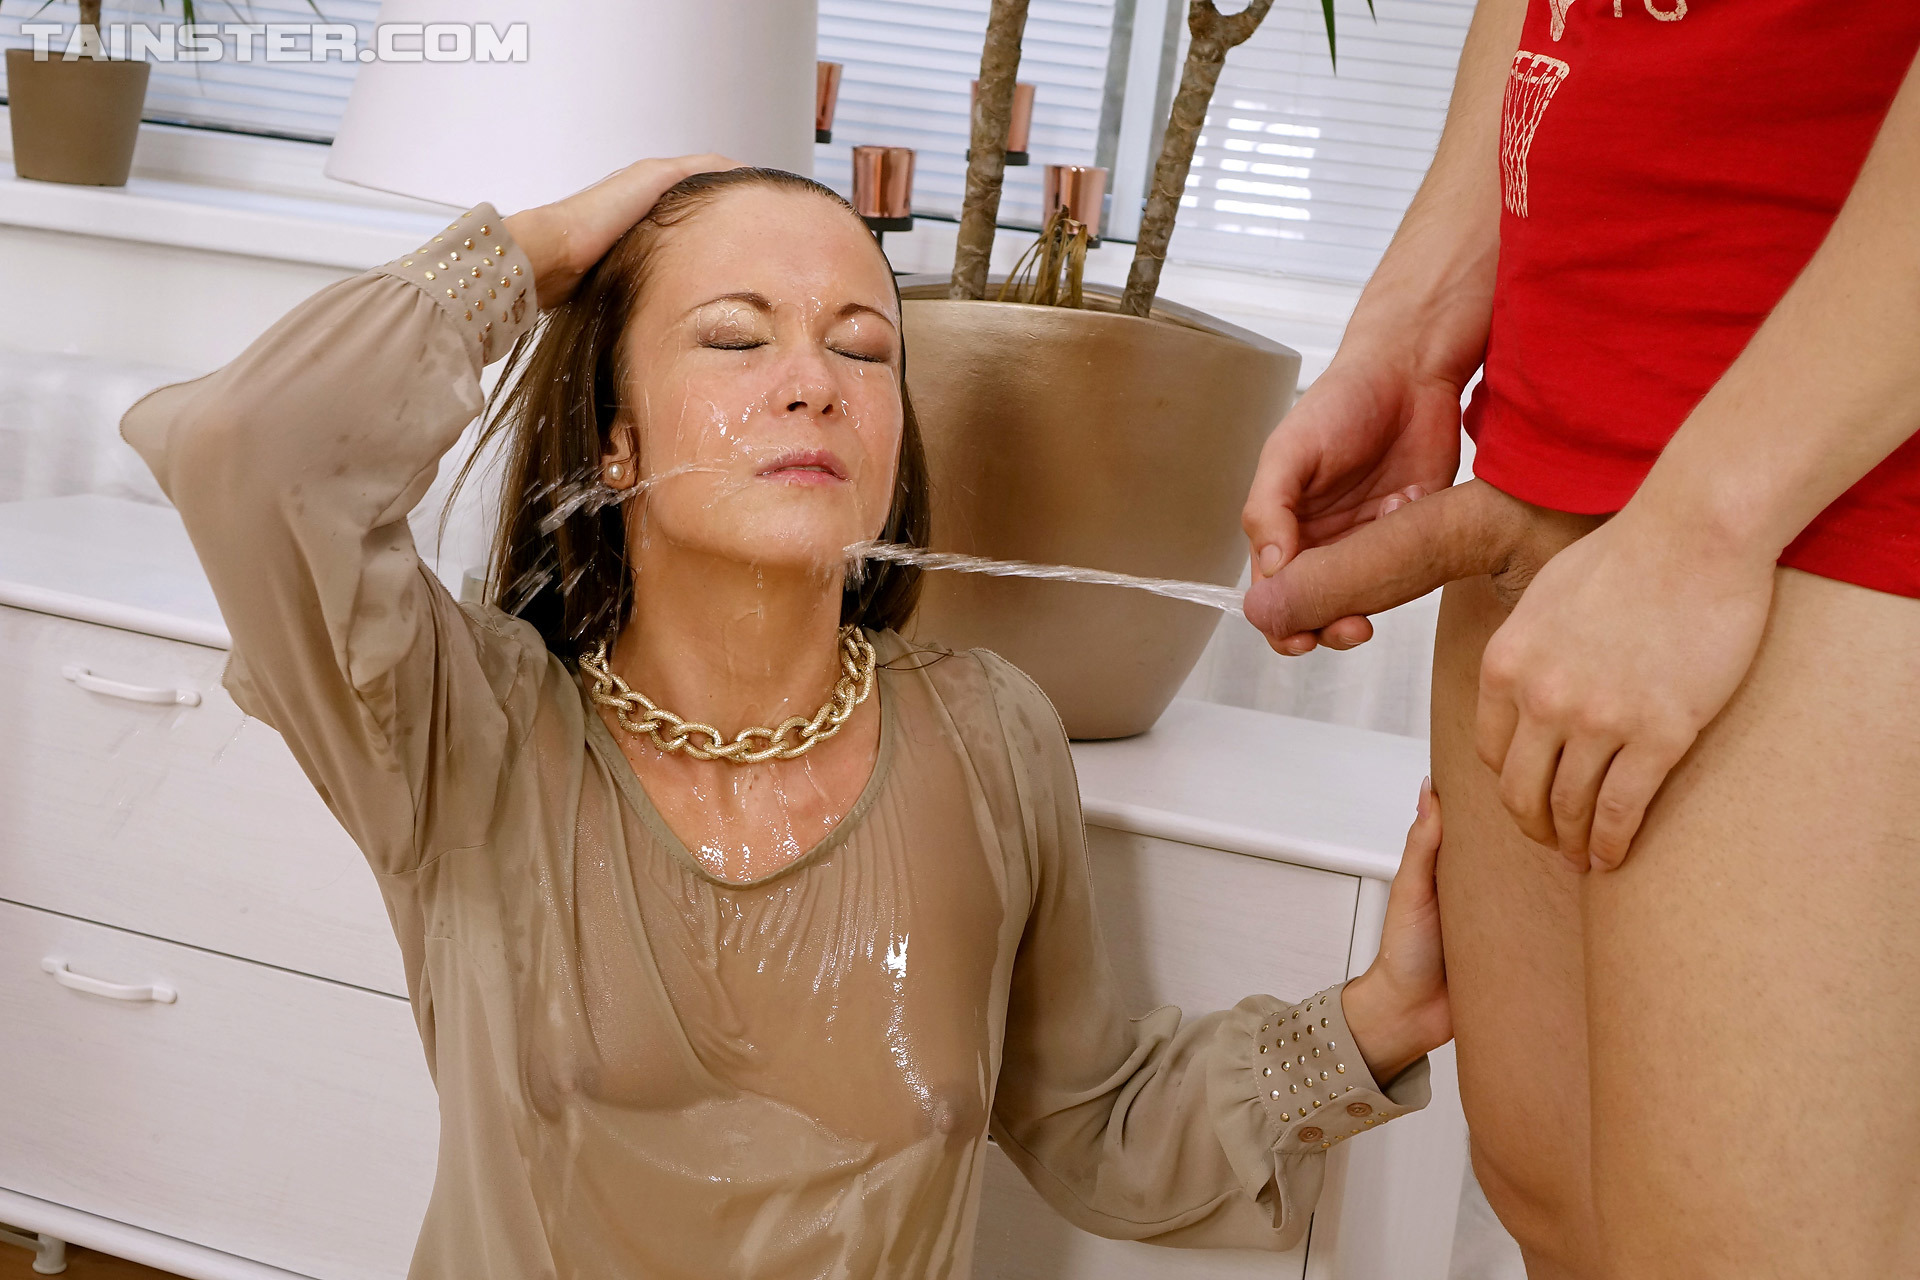 Xxx adult after shows on showtime